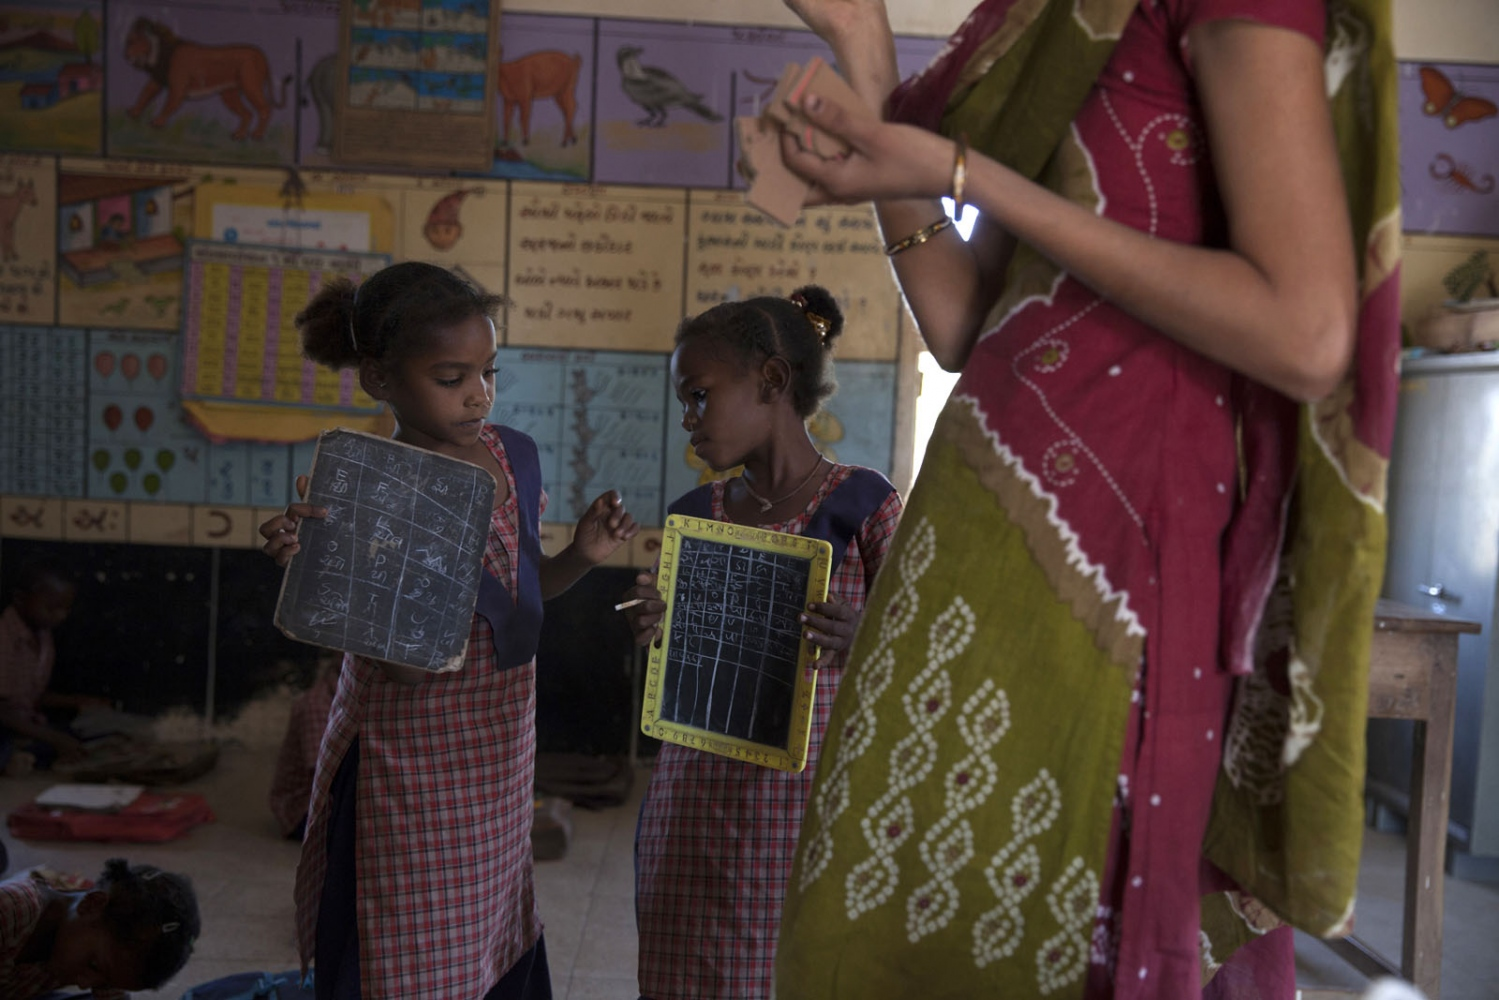 At the only school in Jambur two Sidi girls take their small blackboards to show the Indian teacher their work. The remote village of Jambur, located on the edge of the Gir forest, is almost 99% Sidi and has one of the highest concentrations of Sidi's in India. Jambur, India